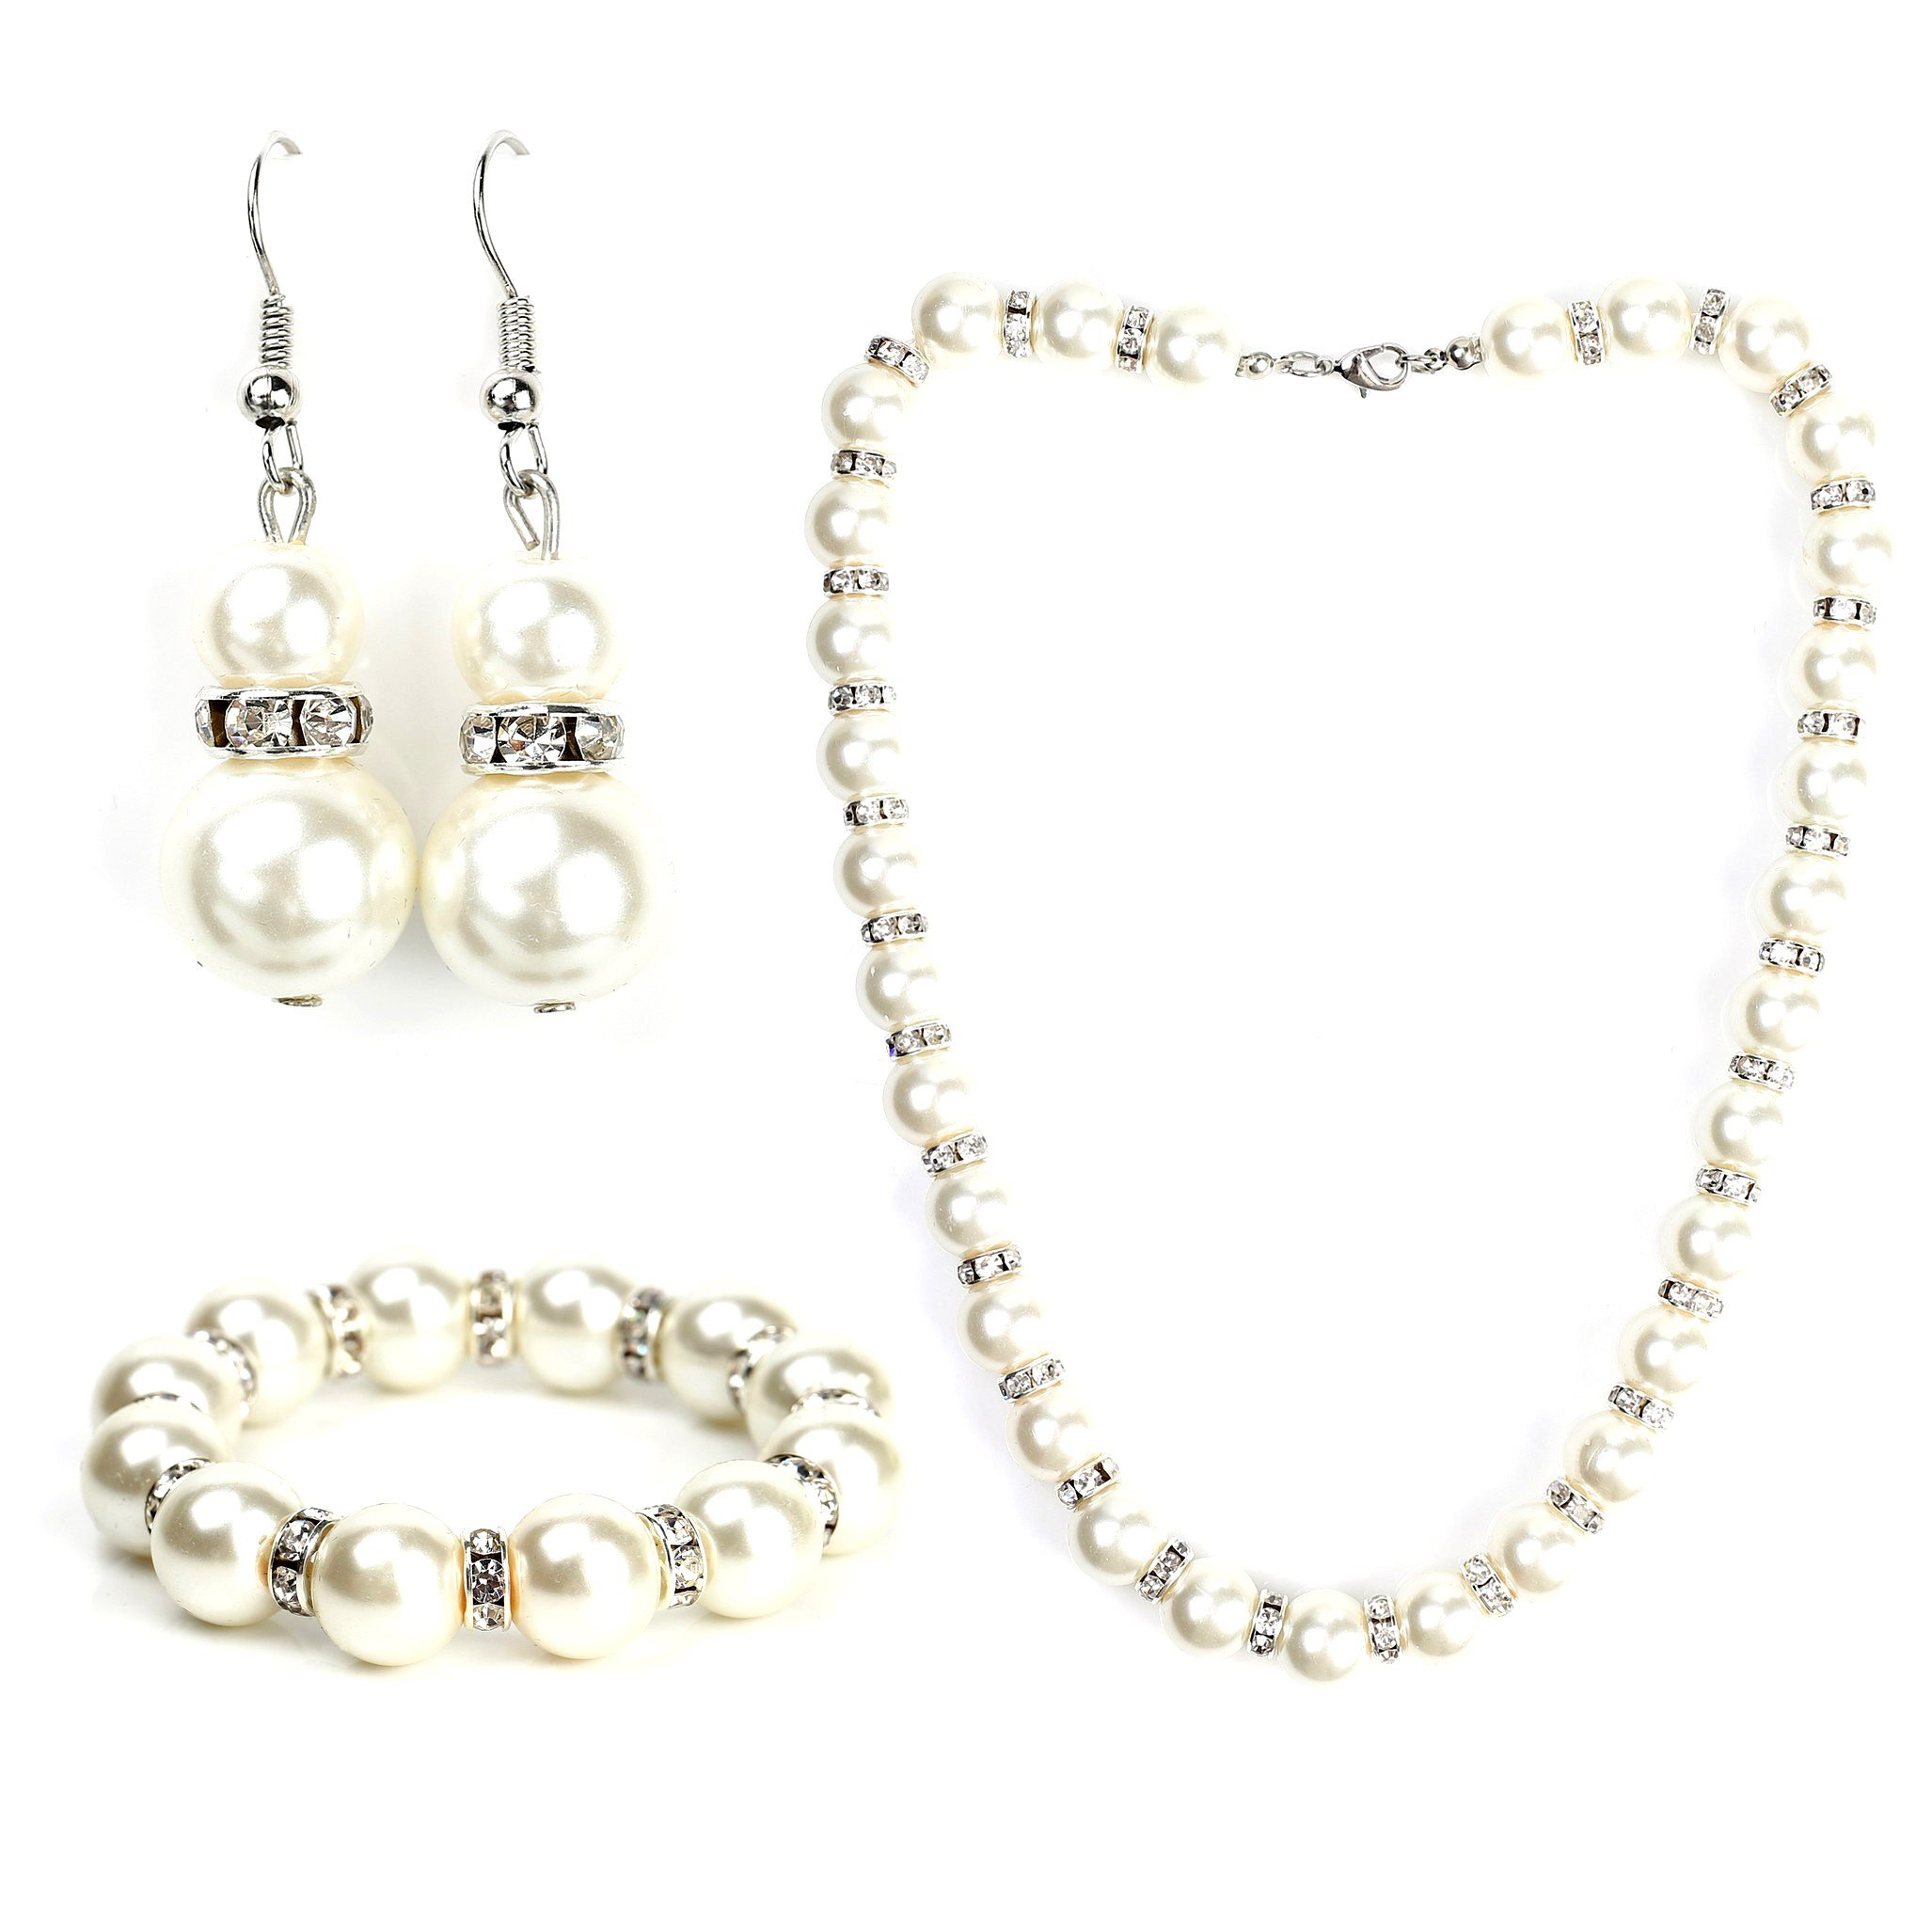 United Elegance Classic Faux Pearl Set - Necklace, Drop Earrings and Coordinating Bracelet with Swarovski Style Crystals